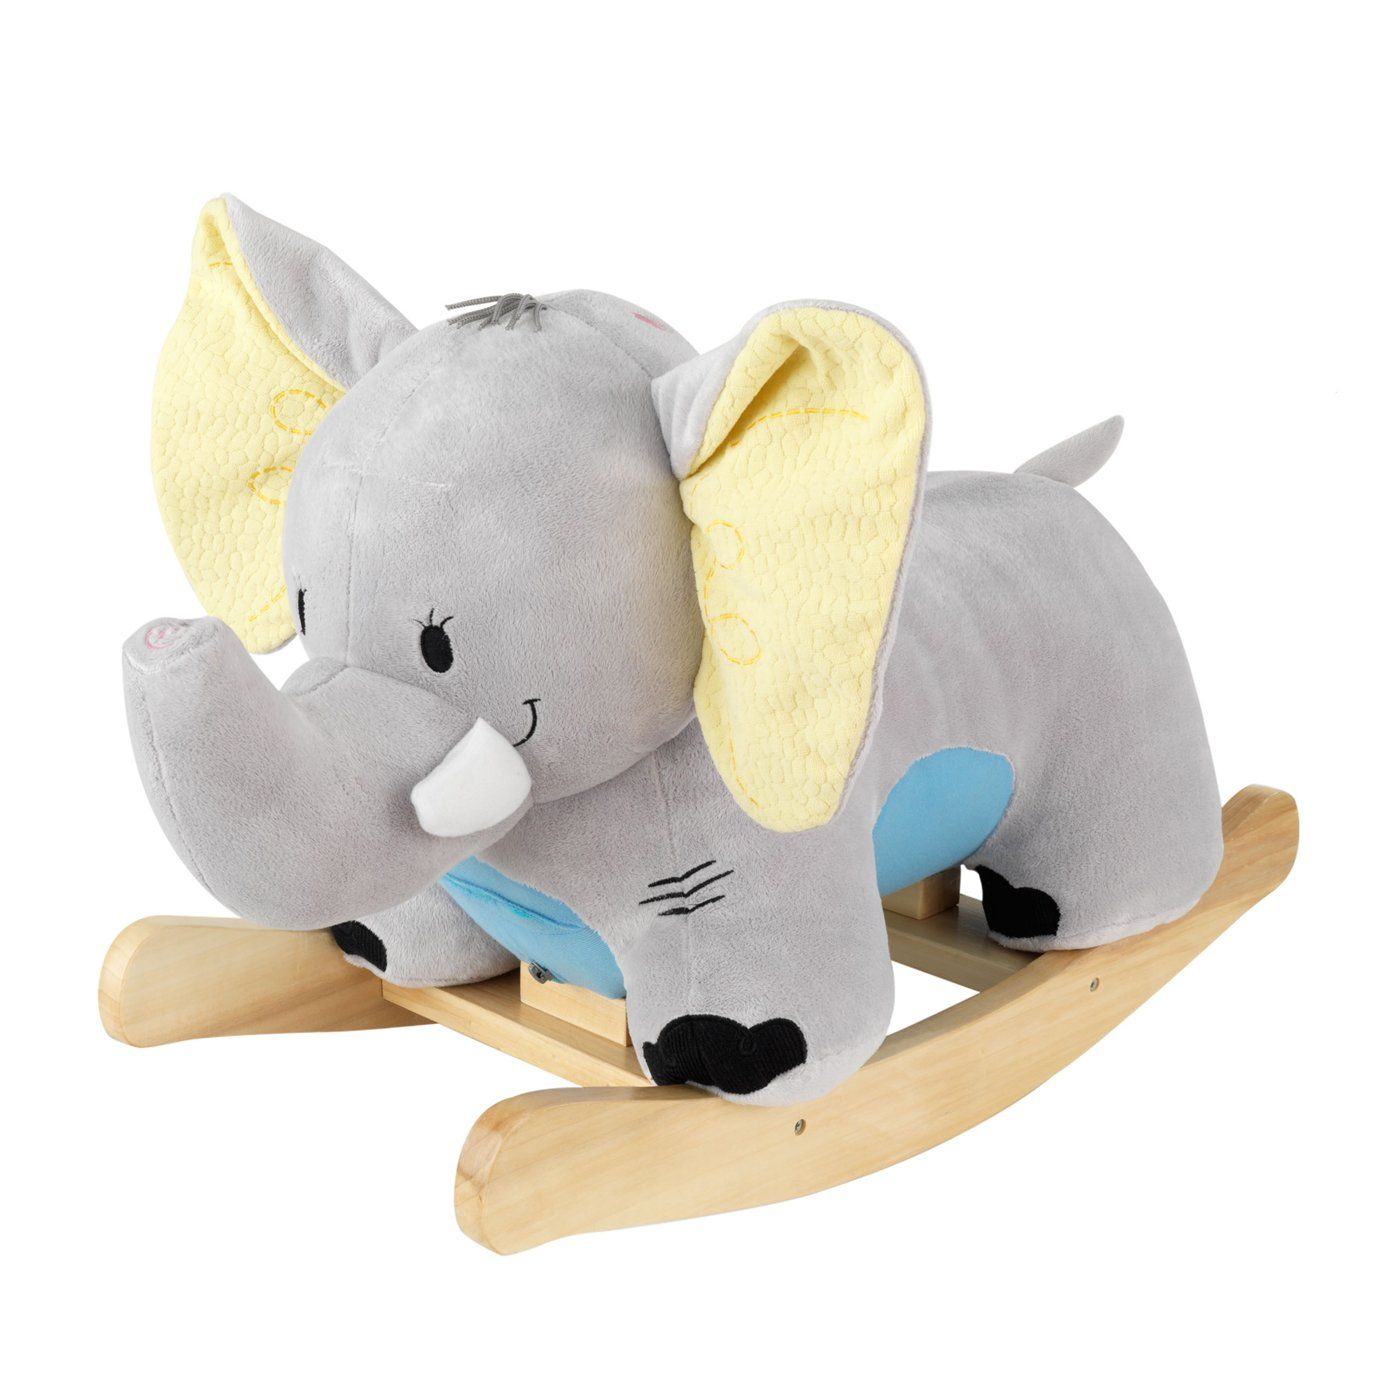 Aunt Priscilla Has A Rocking Chair Gray Dining Chairs Target Kidkraft 66106 Plush Rocker Elephant Horse Cool